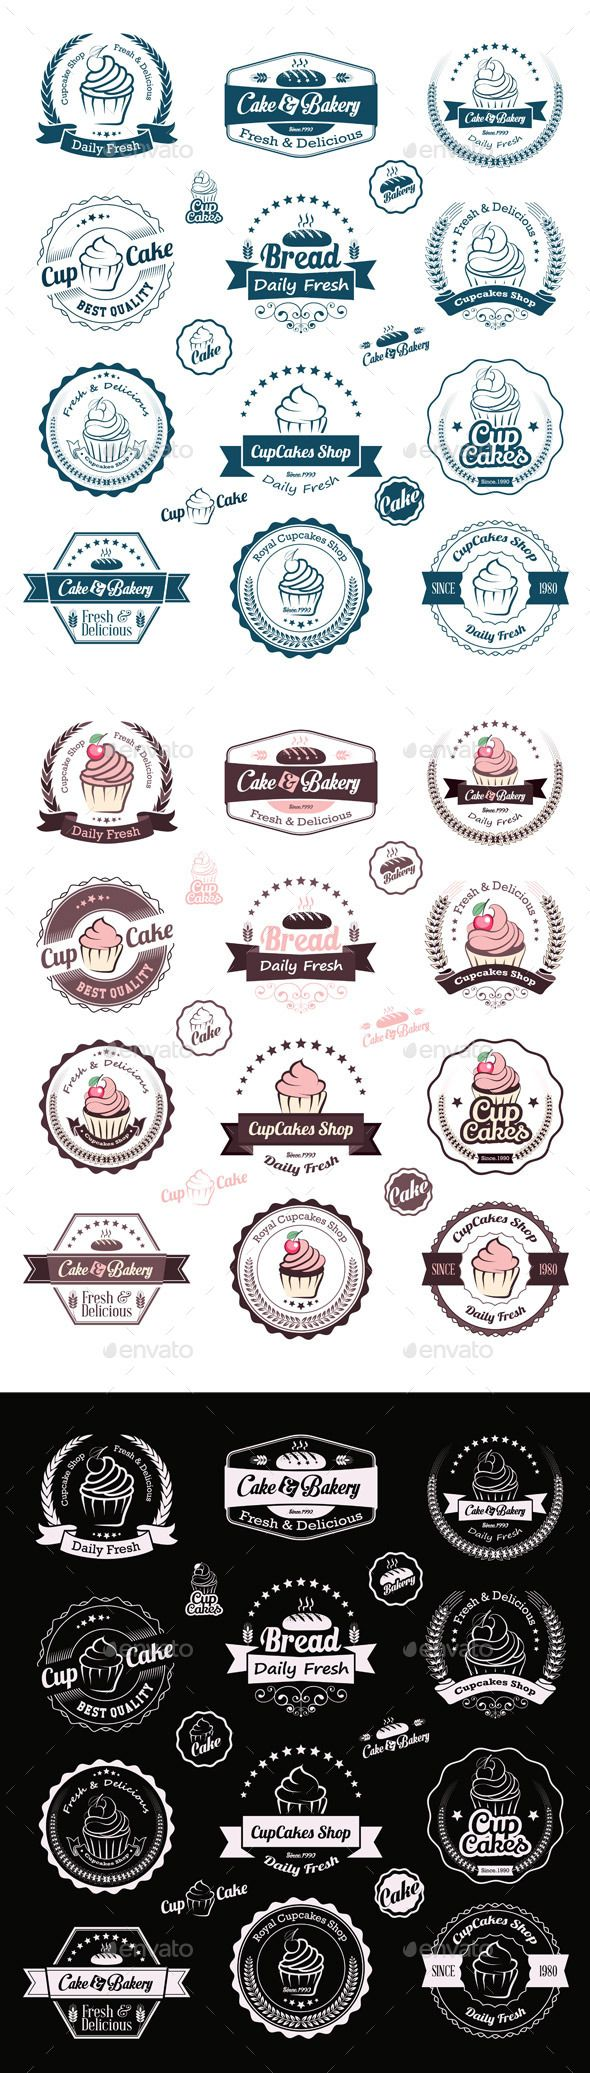 Cupcakes Vintage Labels Vector Template #design Download: http://graphicriver.net/item/cupcakes-vintage-labels/9406205?ref=ksioks